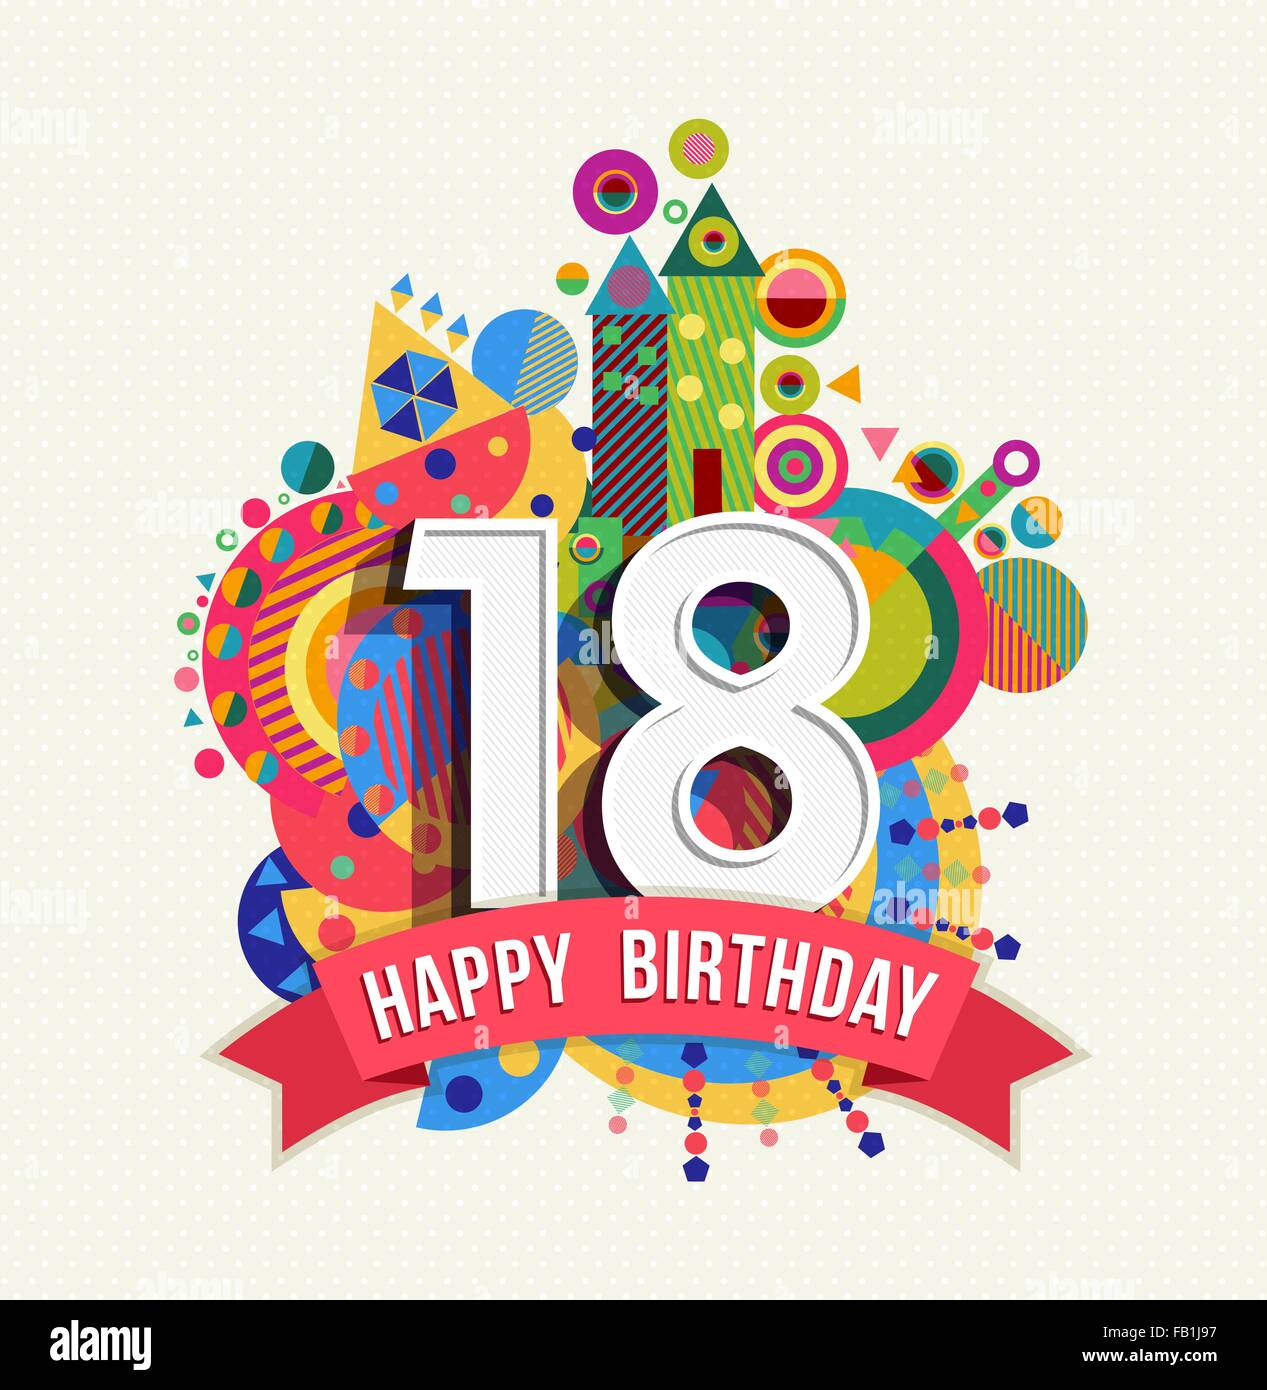 Happy Birthday Eighteen 18 Year Fun Celebration Greeting Card With Number Text Label And Colorful Geometry Design EPS10